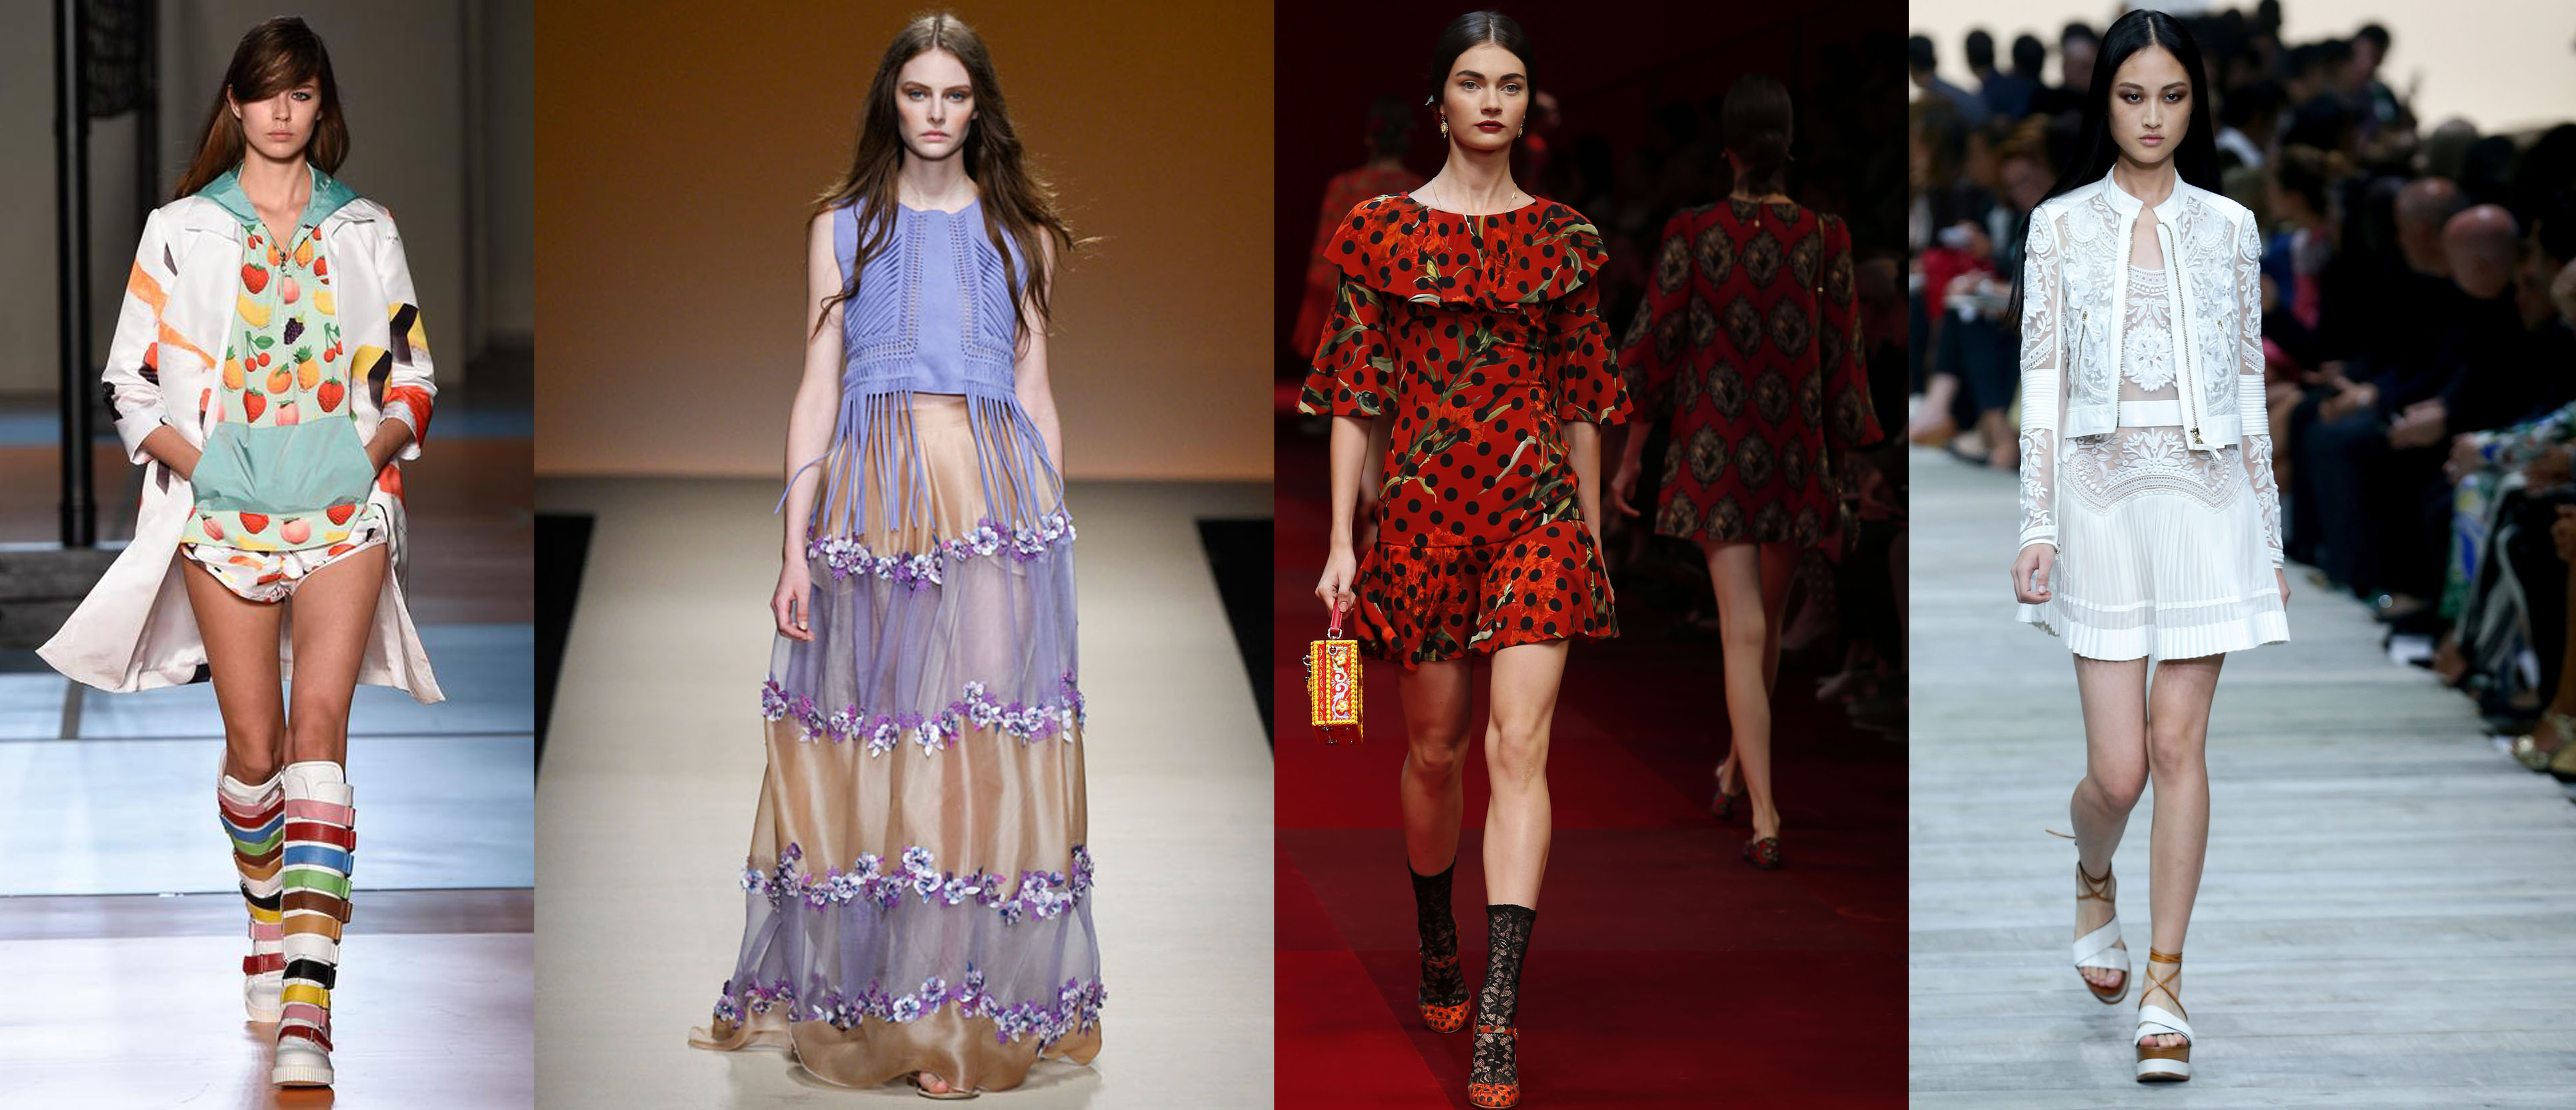 Trend Wandfarben 2015 Trends For Spring Summer 2015: Milan Fashion Week | The